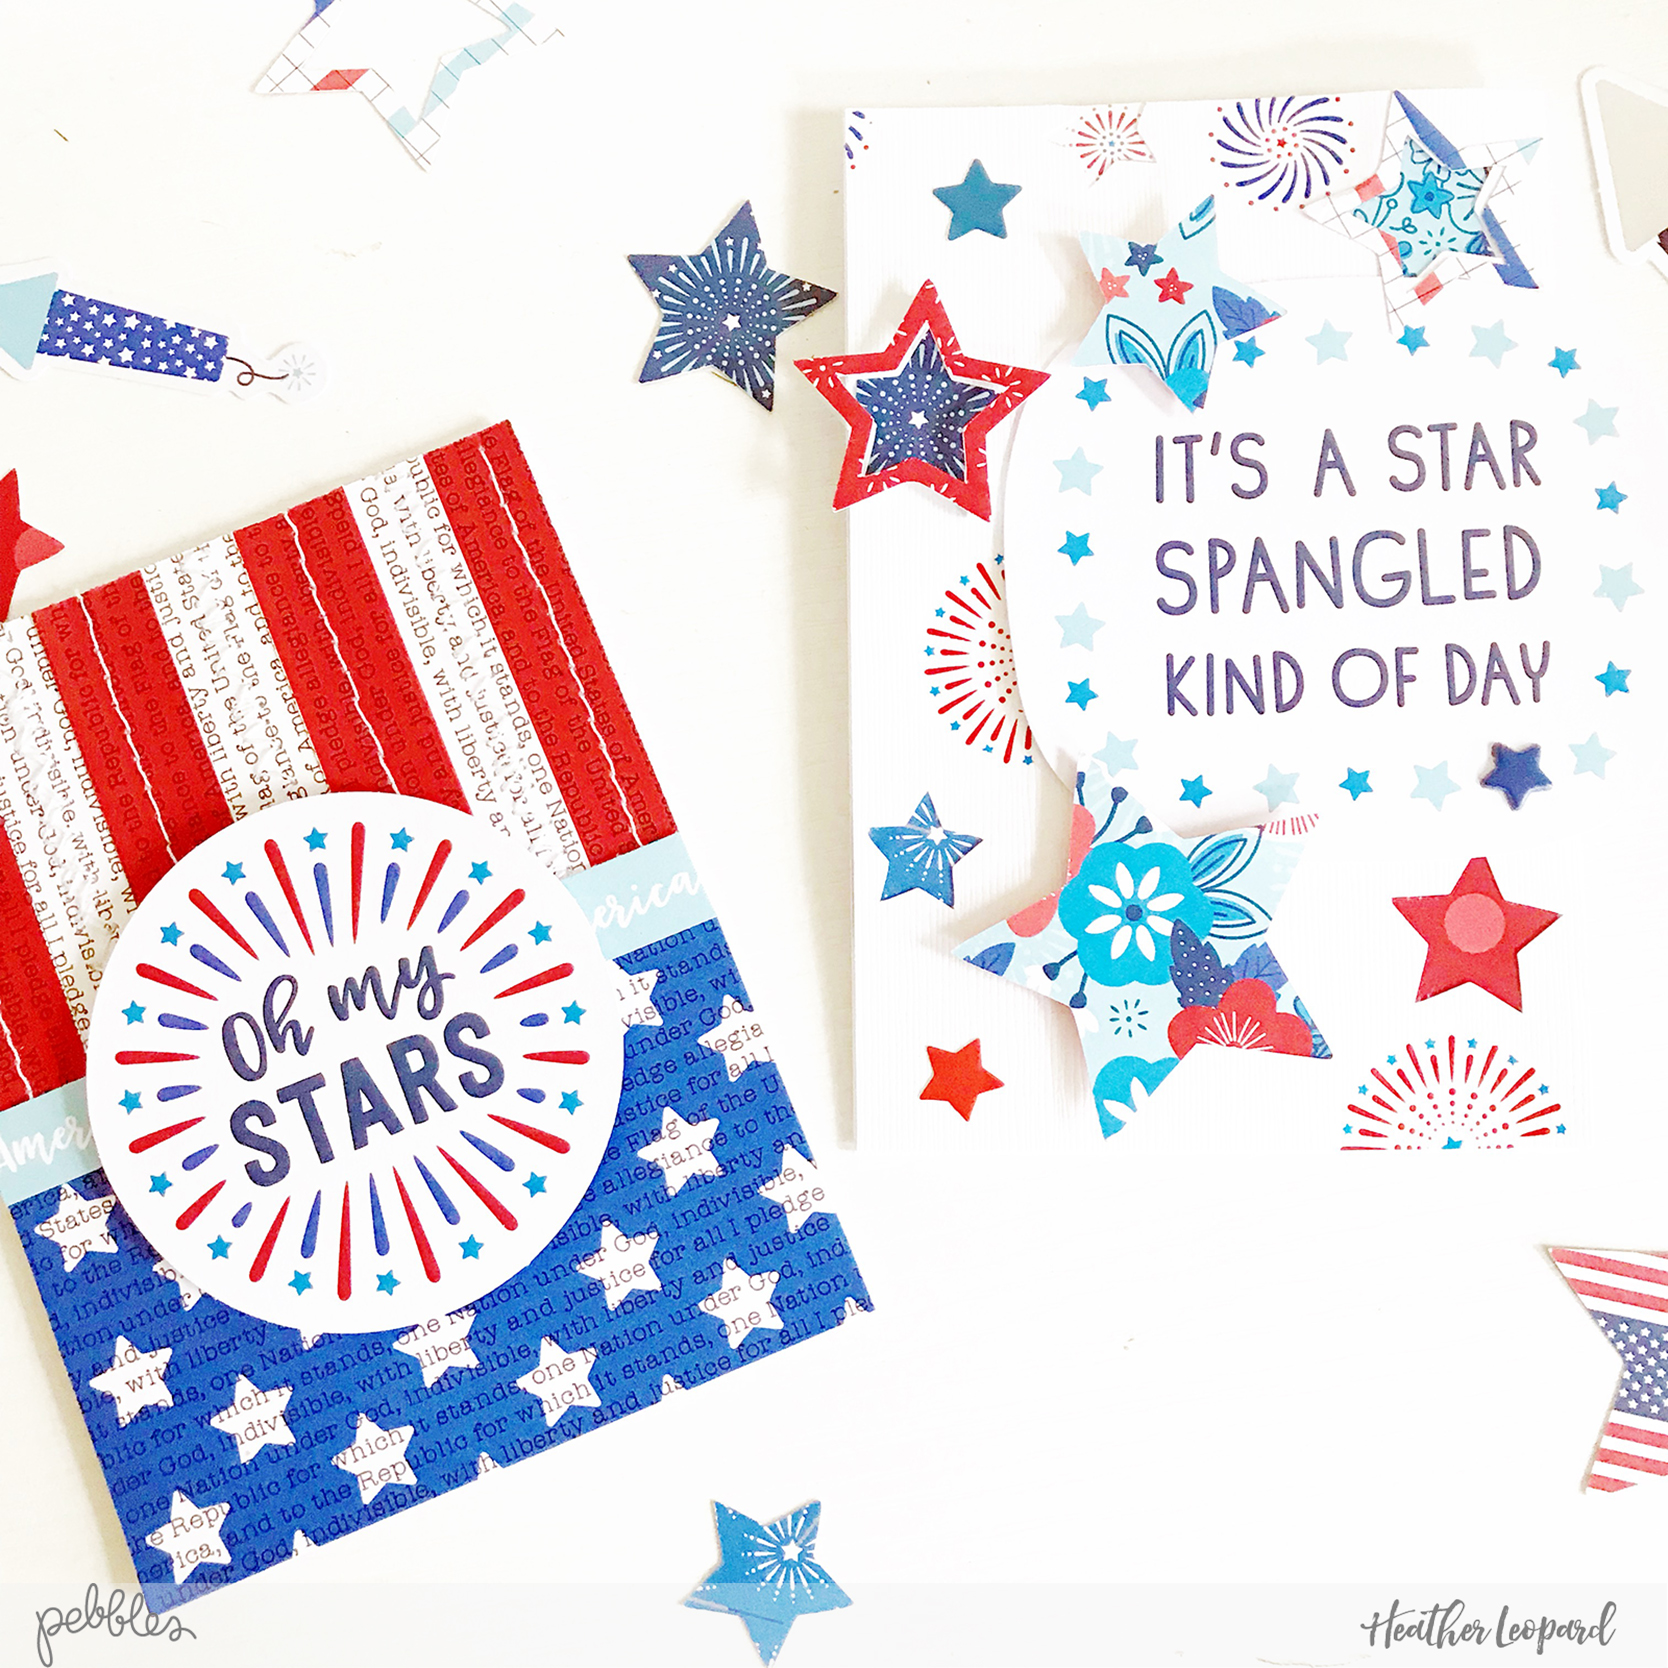 https://pebblesincblog.com/wp-content/uploads/2018/03/Pebbles-Patriotic-Cards-by-Heather-Leopard.jpg